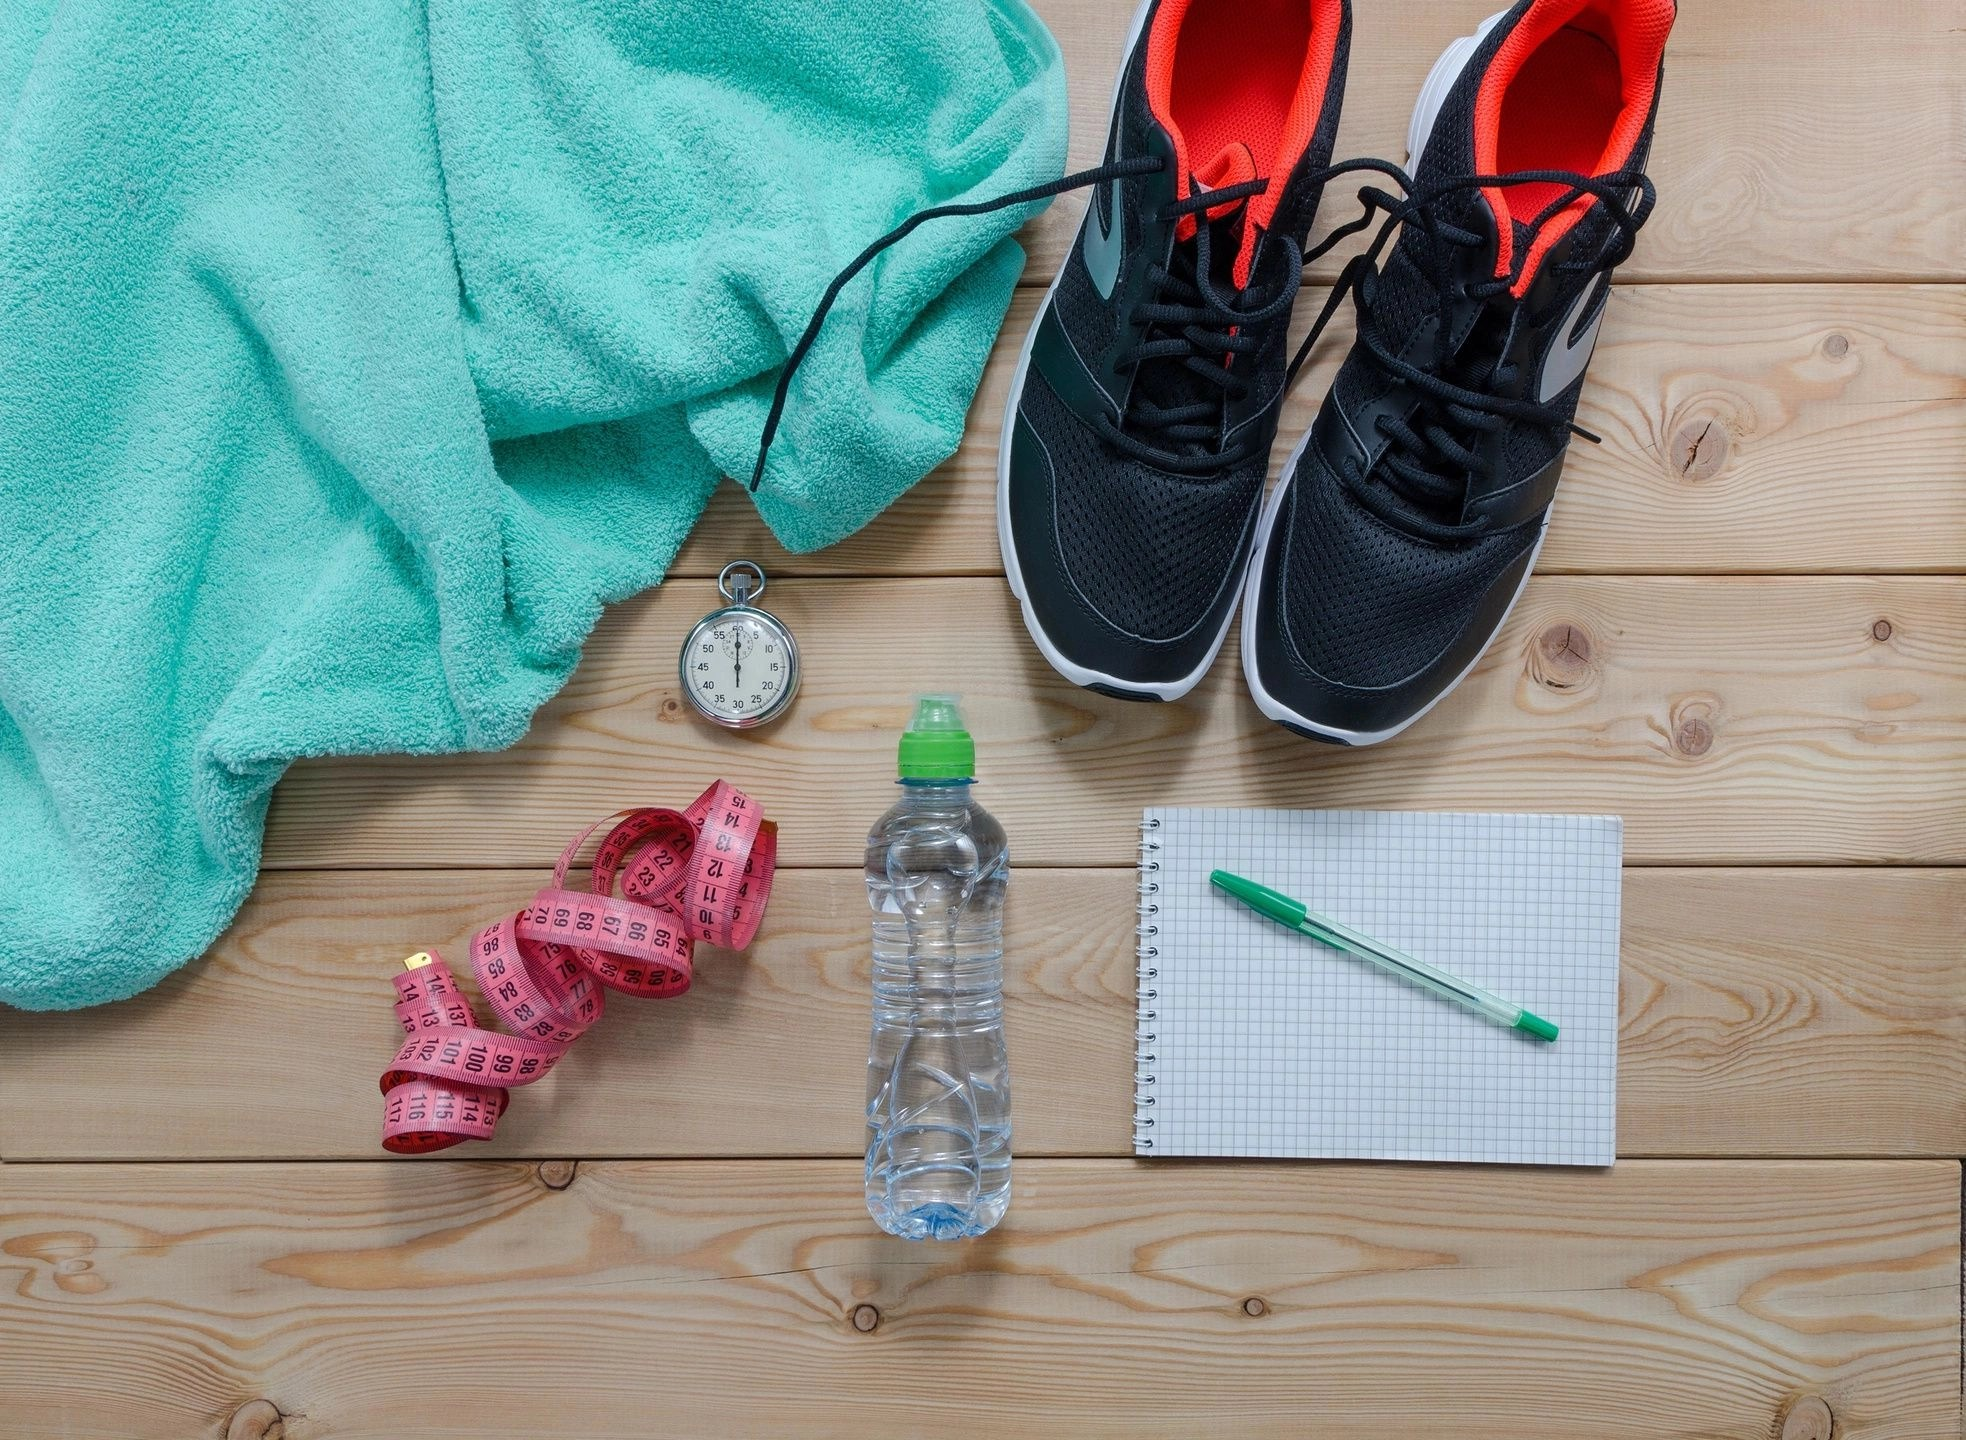 Get Paid to Lose Weight: Four Money-Making Ways to Stay Motivated